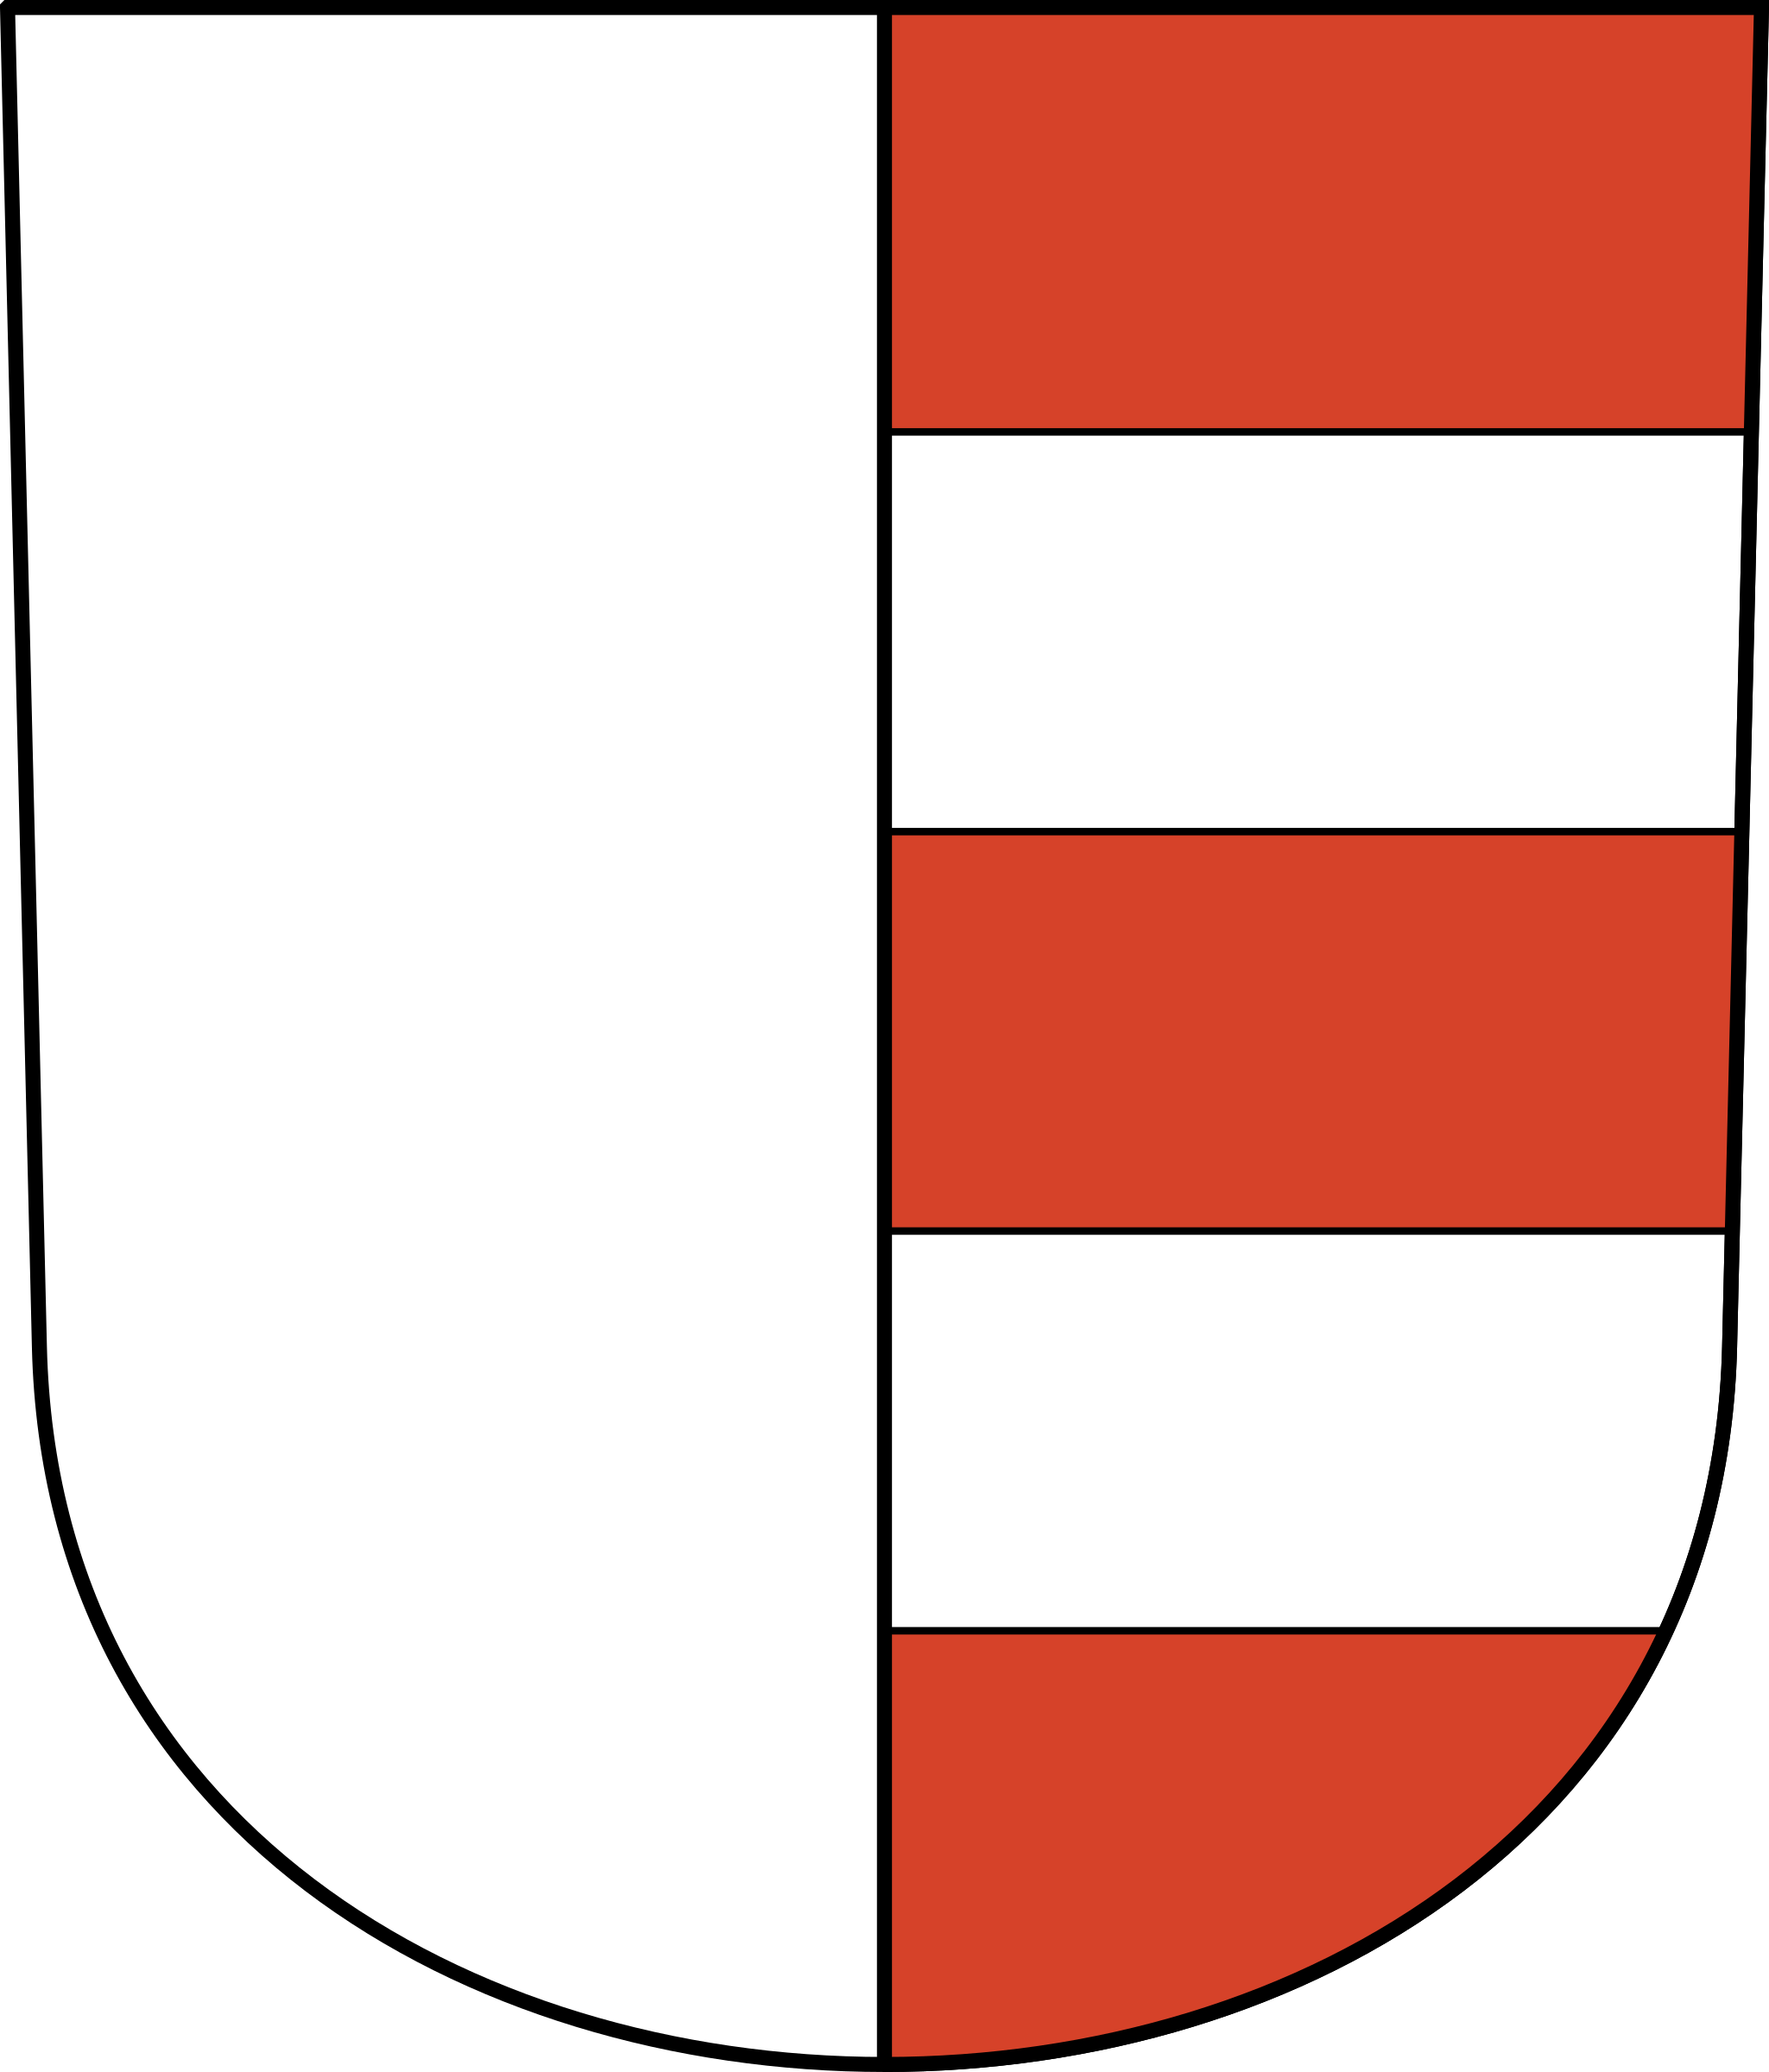 Uster - Coat of arms 1 by wipp